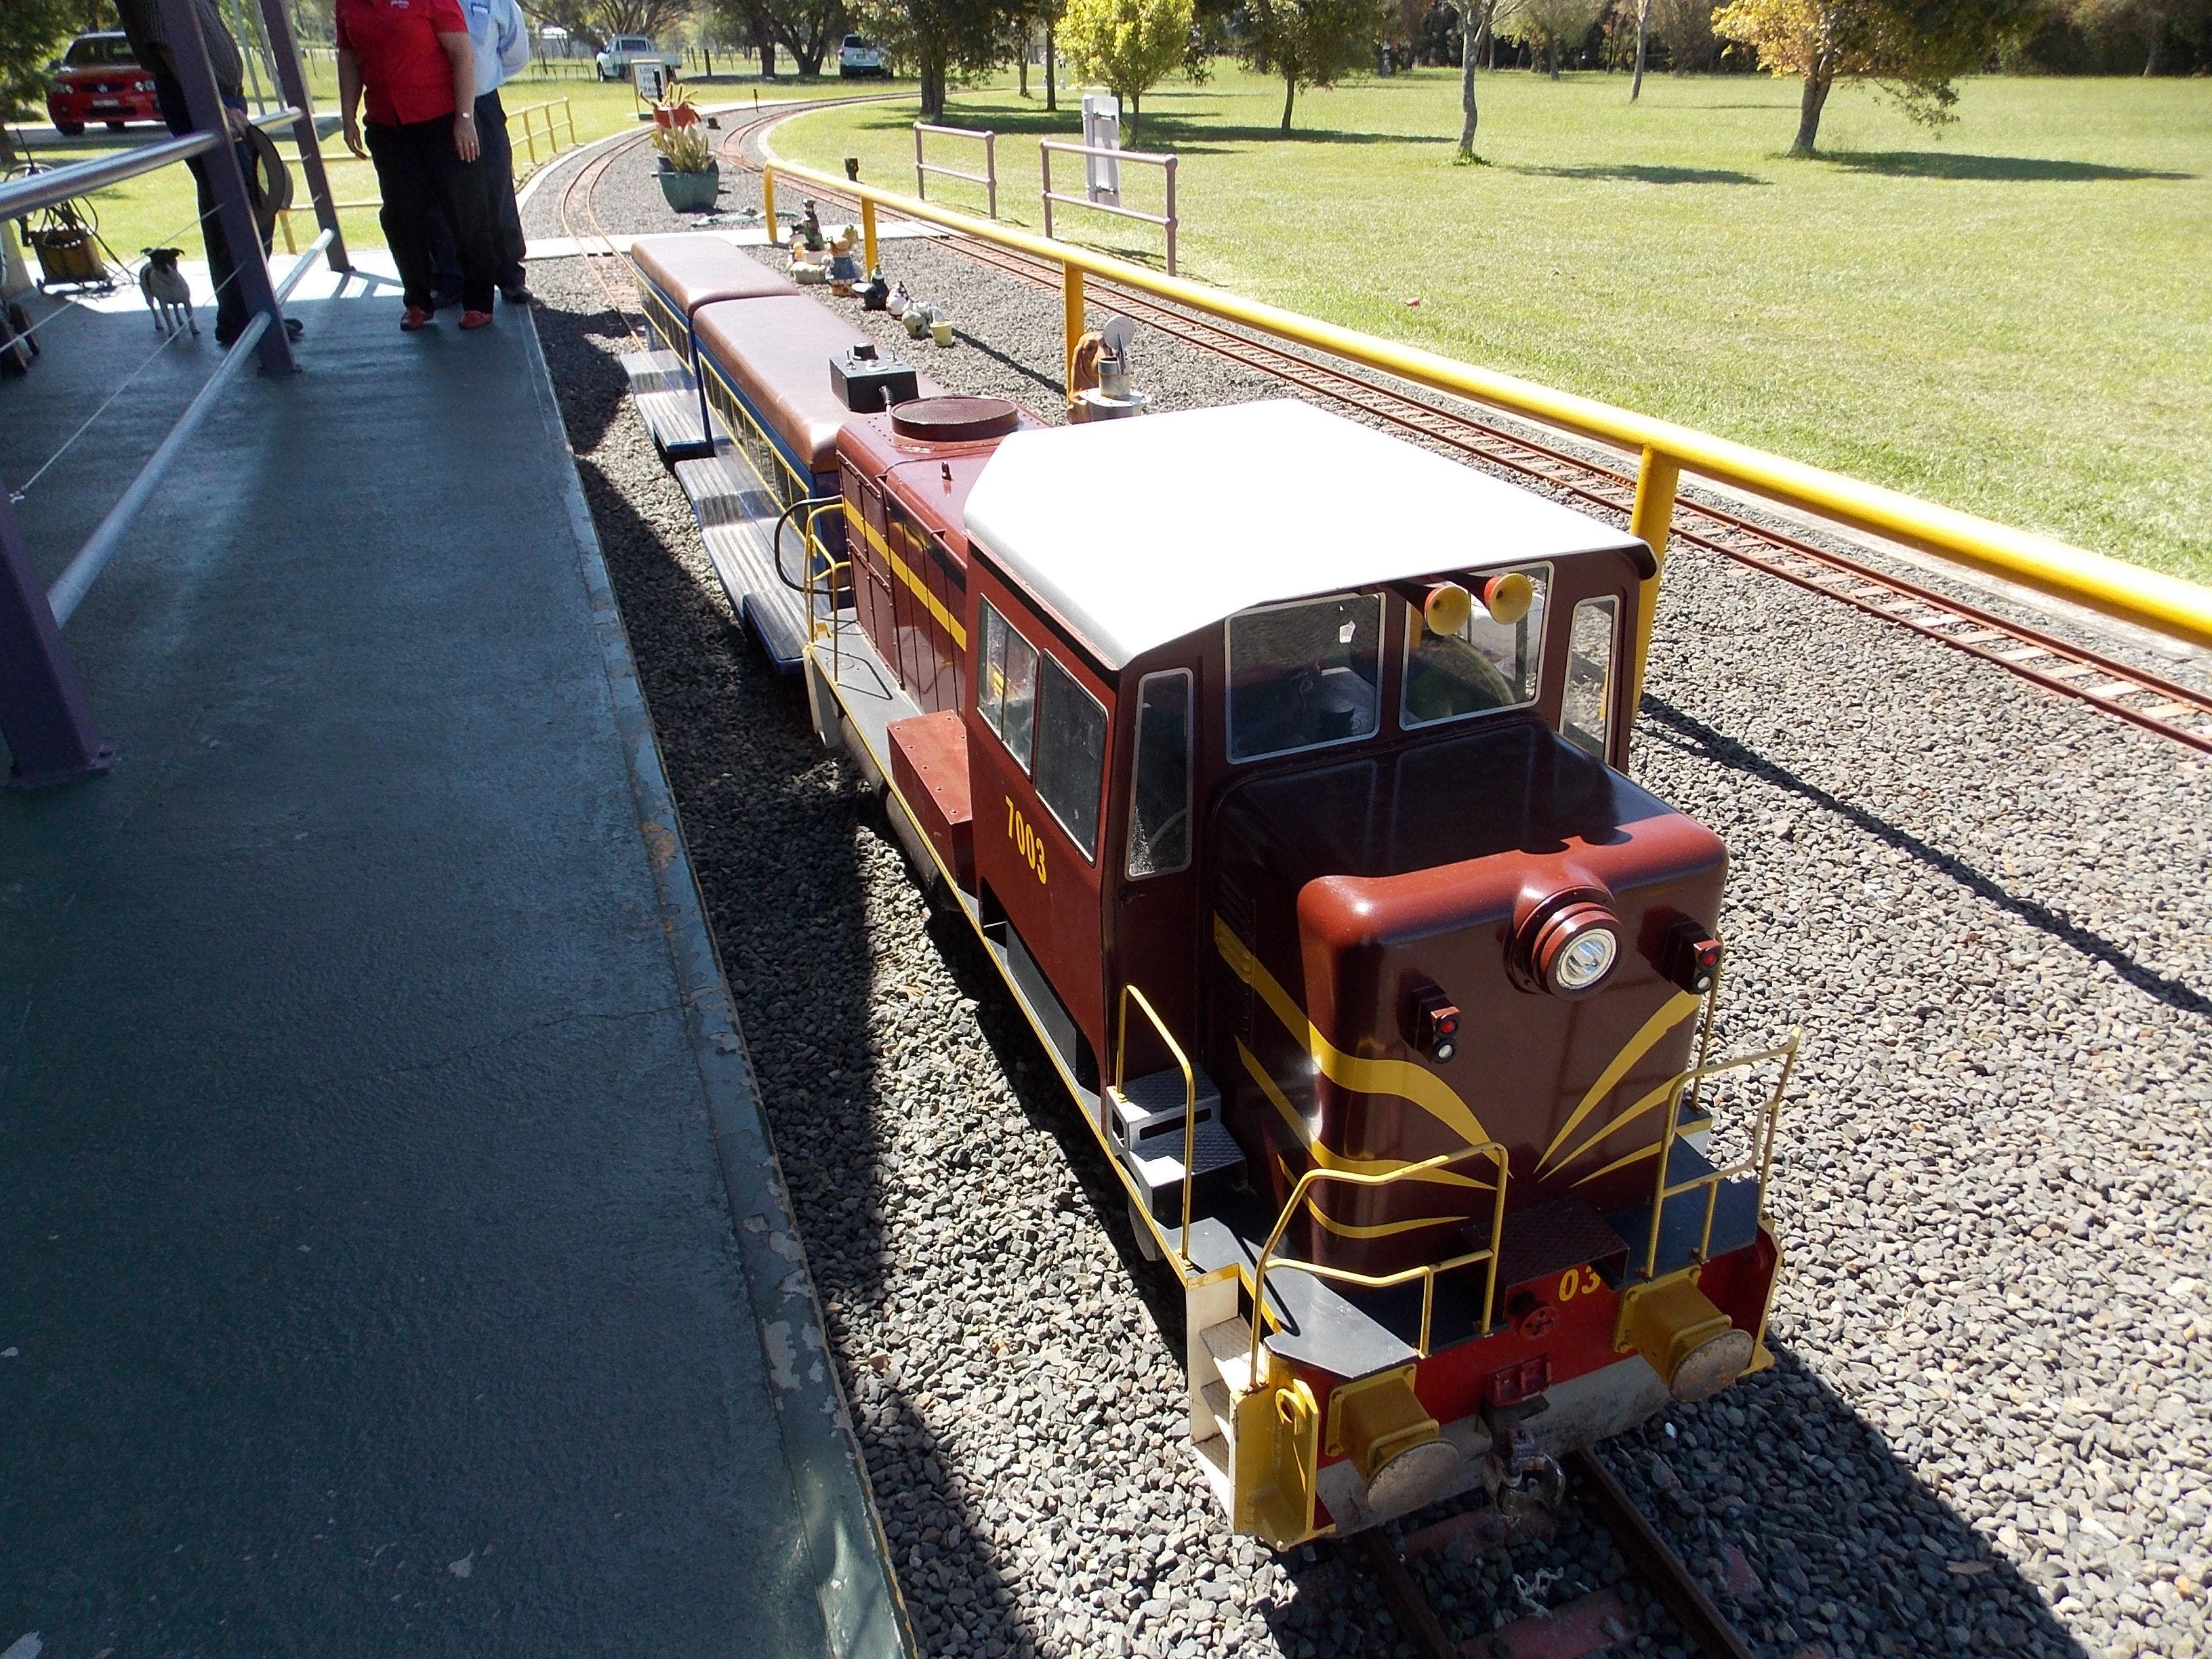 Penwood Miniature Railway - Hotel Accommodation